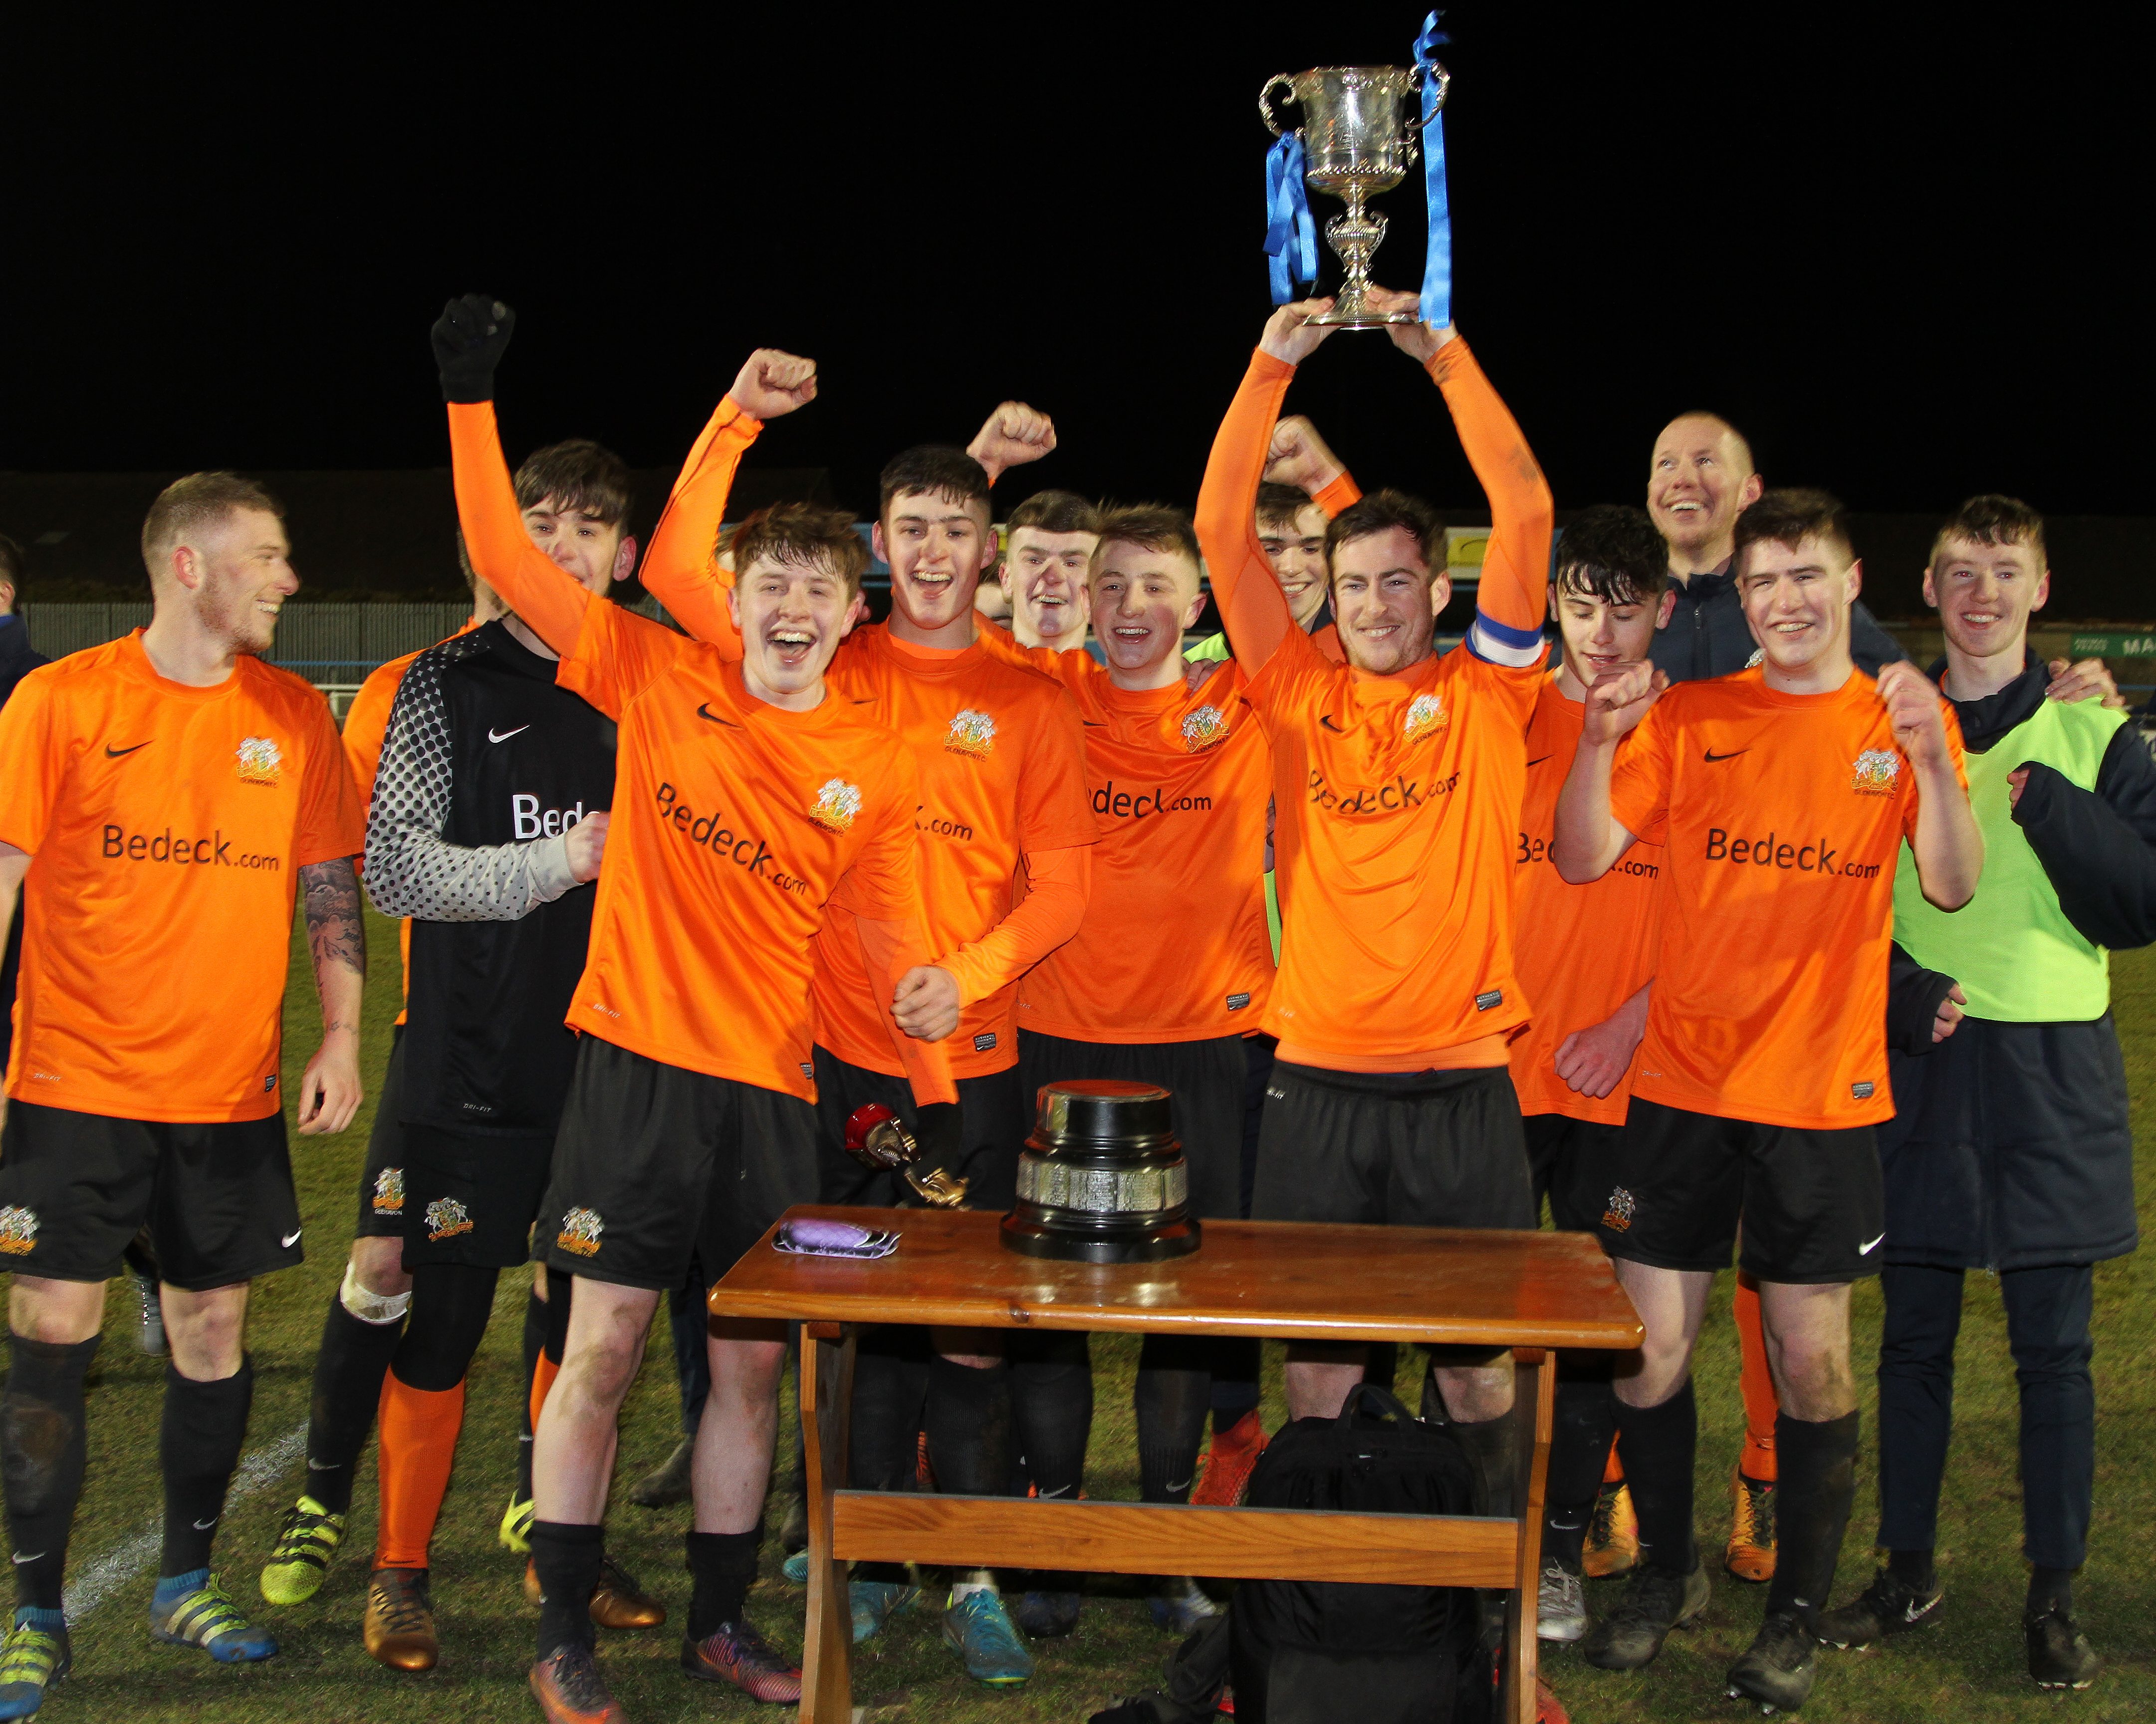 Gary Praises Players and Coaches for Cup Win